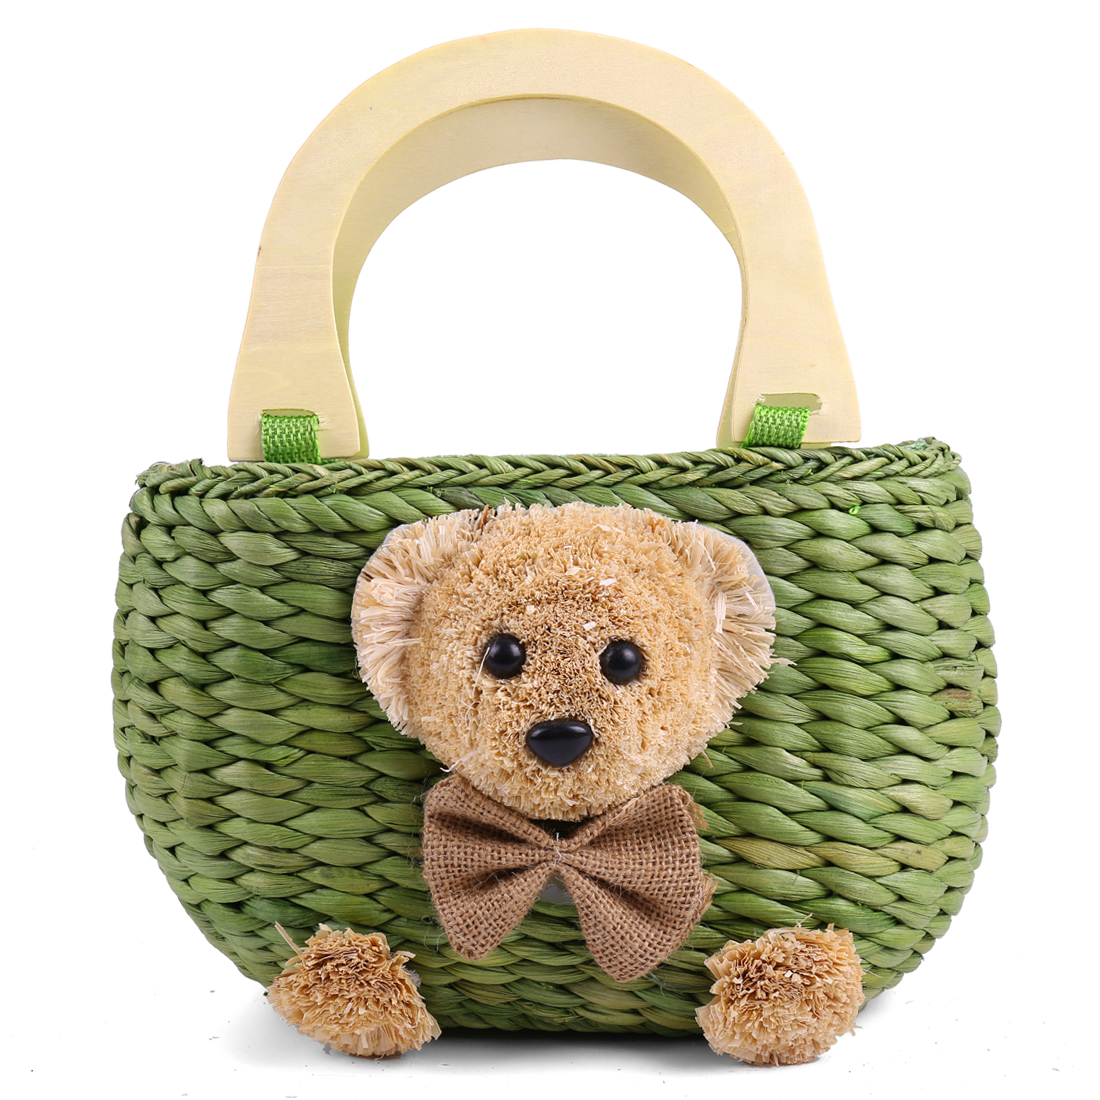 Girls Fashional Light Green Wood Handle Design Woven Straw Handbag